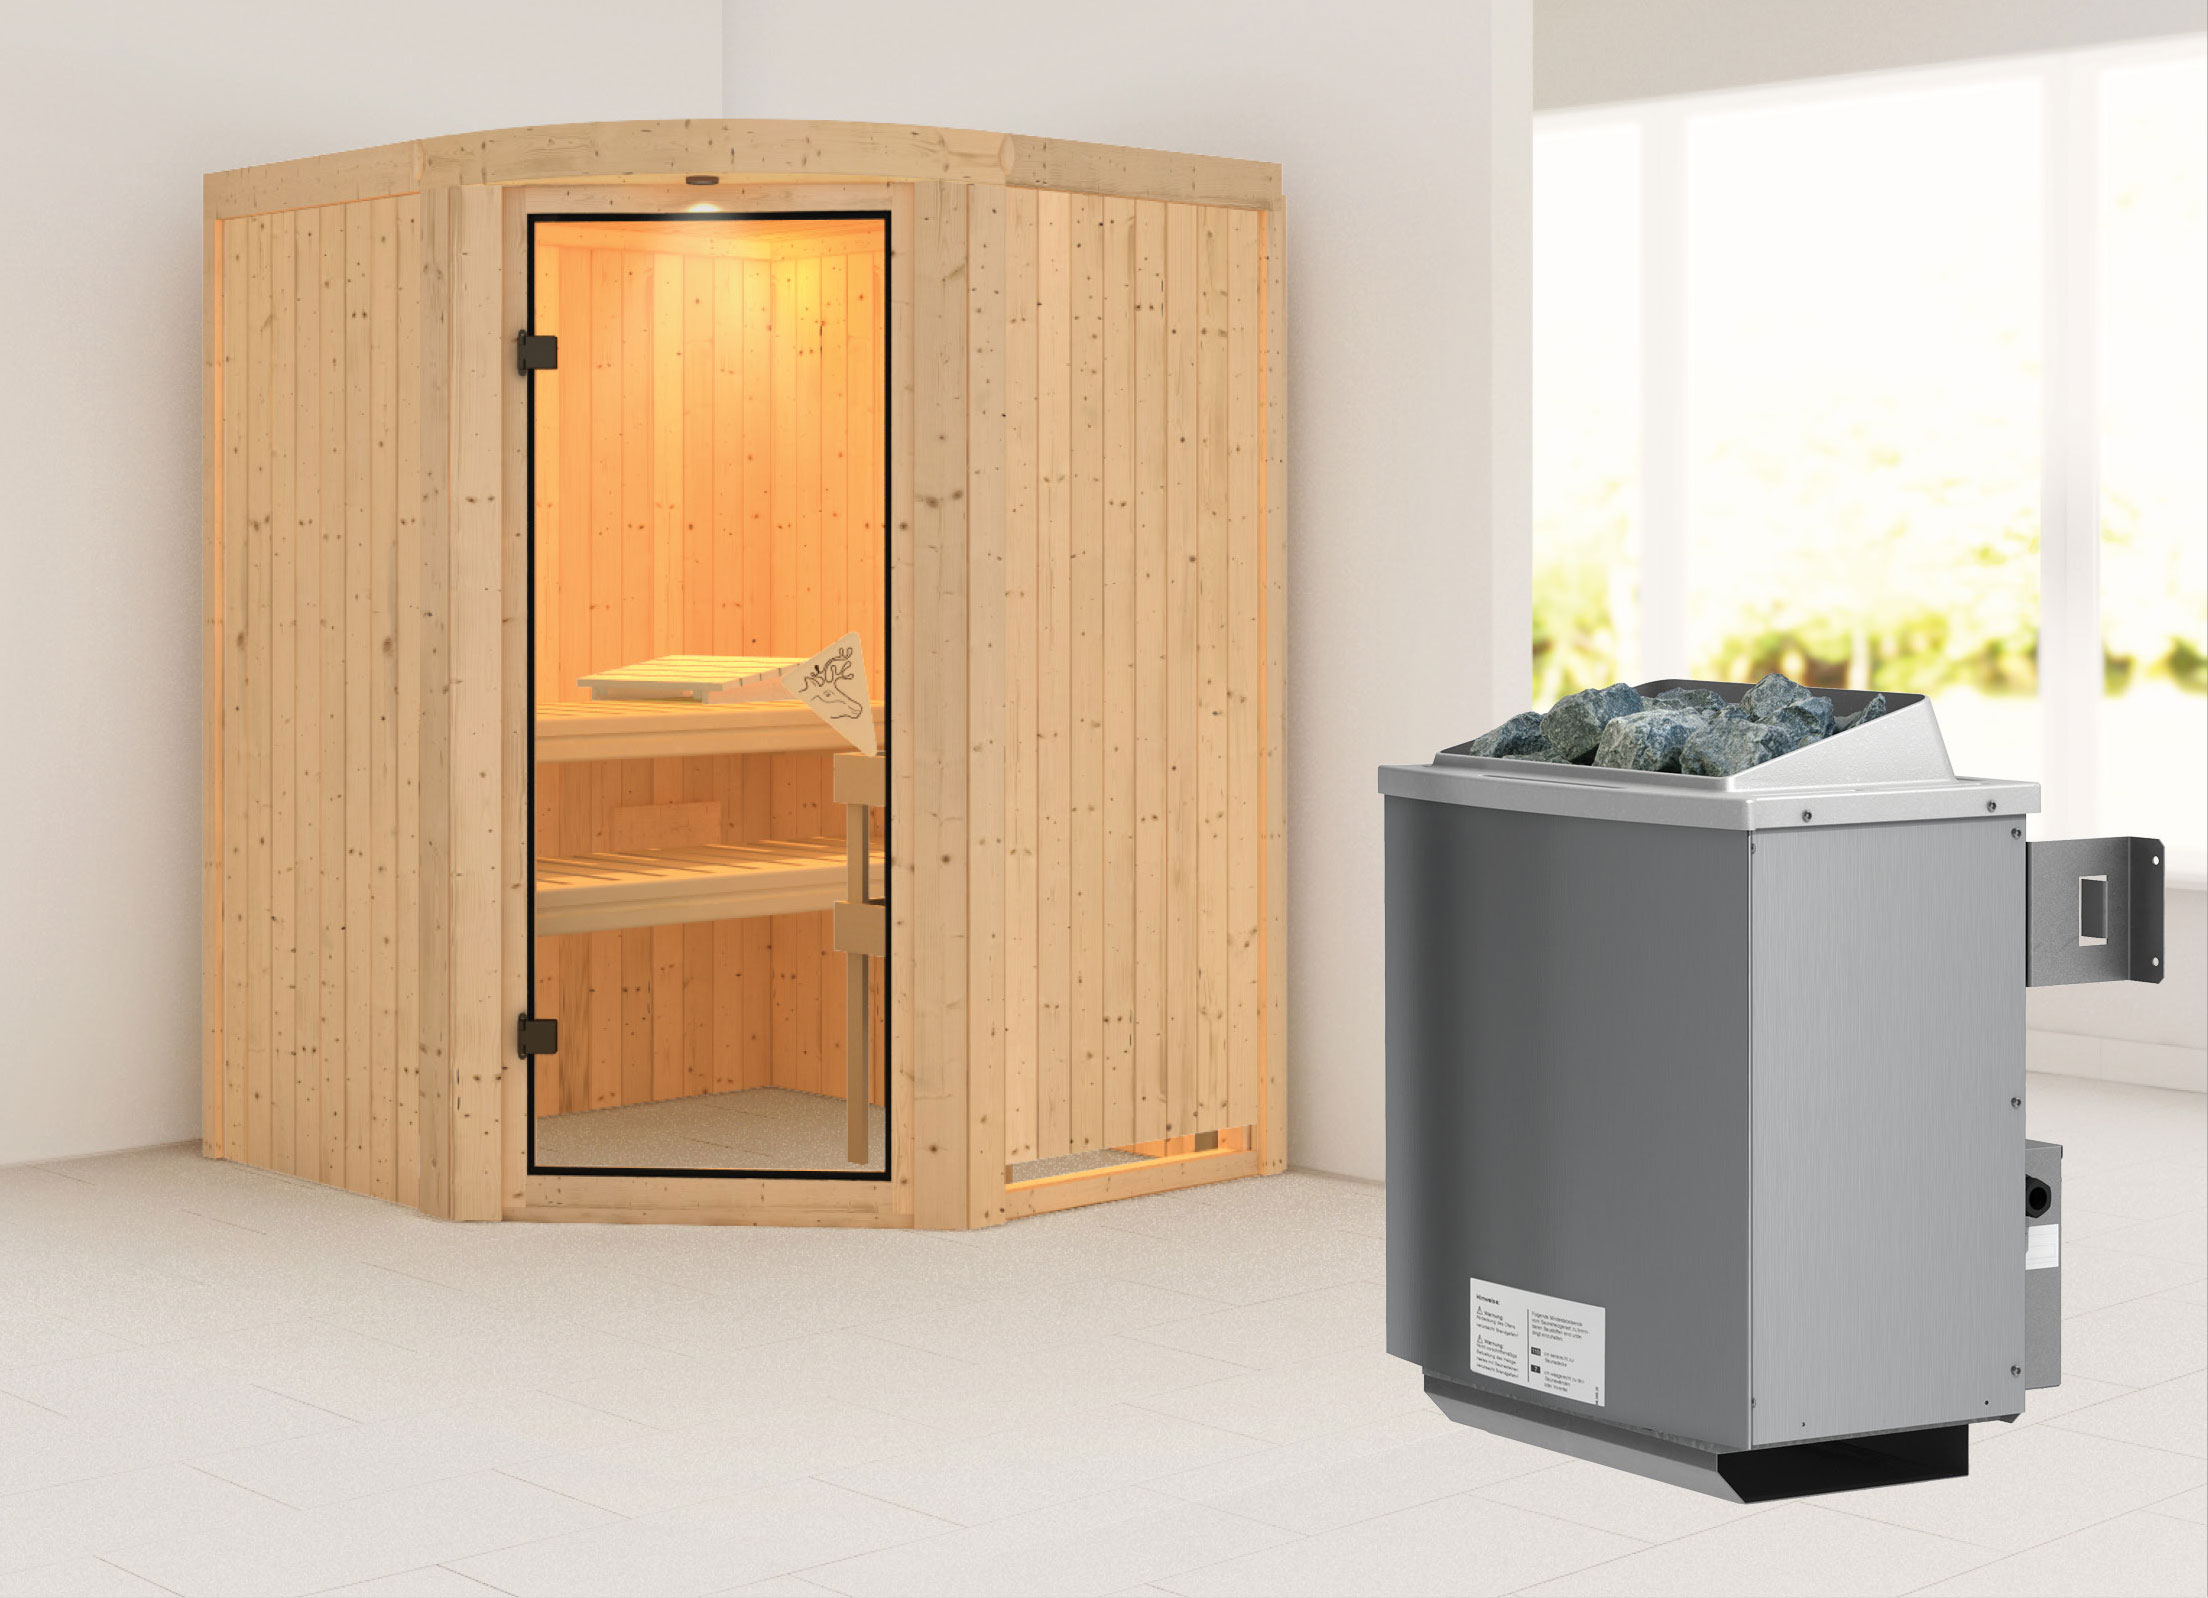 karibu sauna asmada 68mm mit ofen 9kw intern classic t r bei. Black Bedroom Furniture Sets. Home Design Ideas